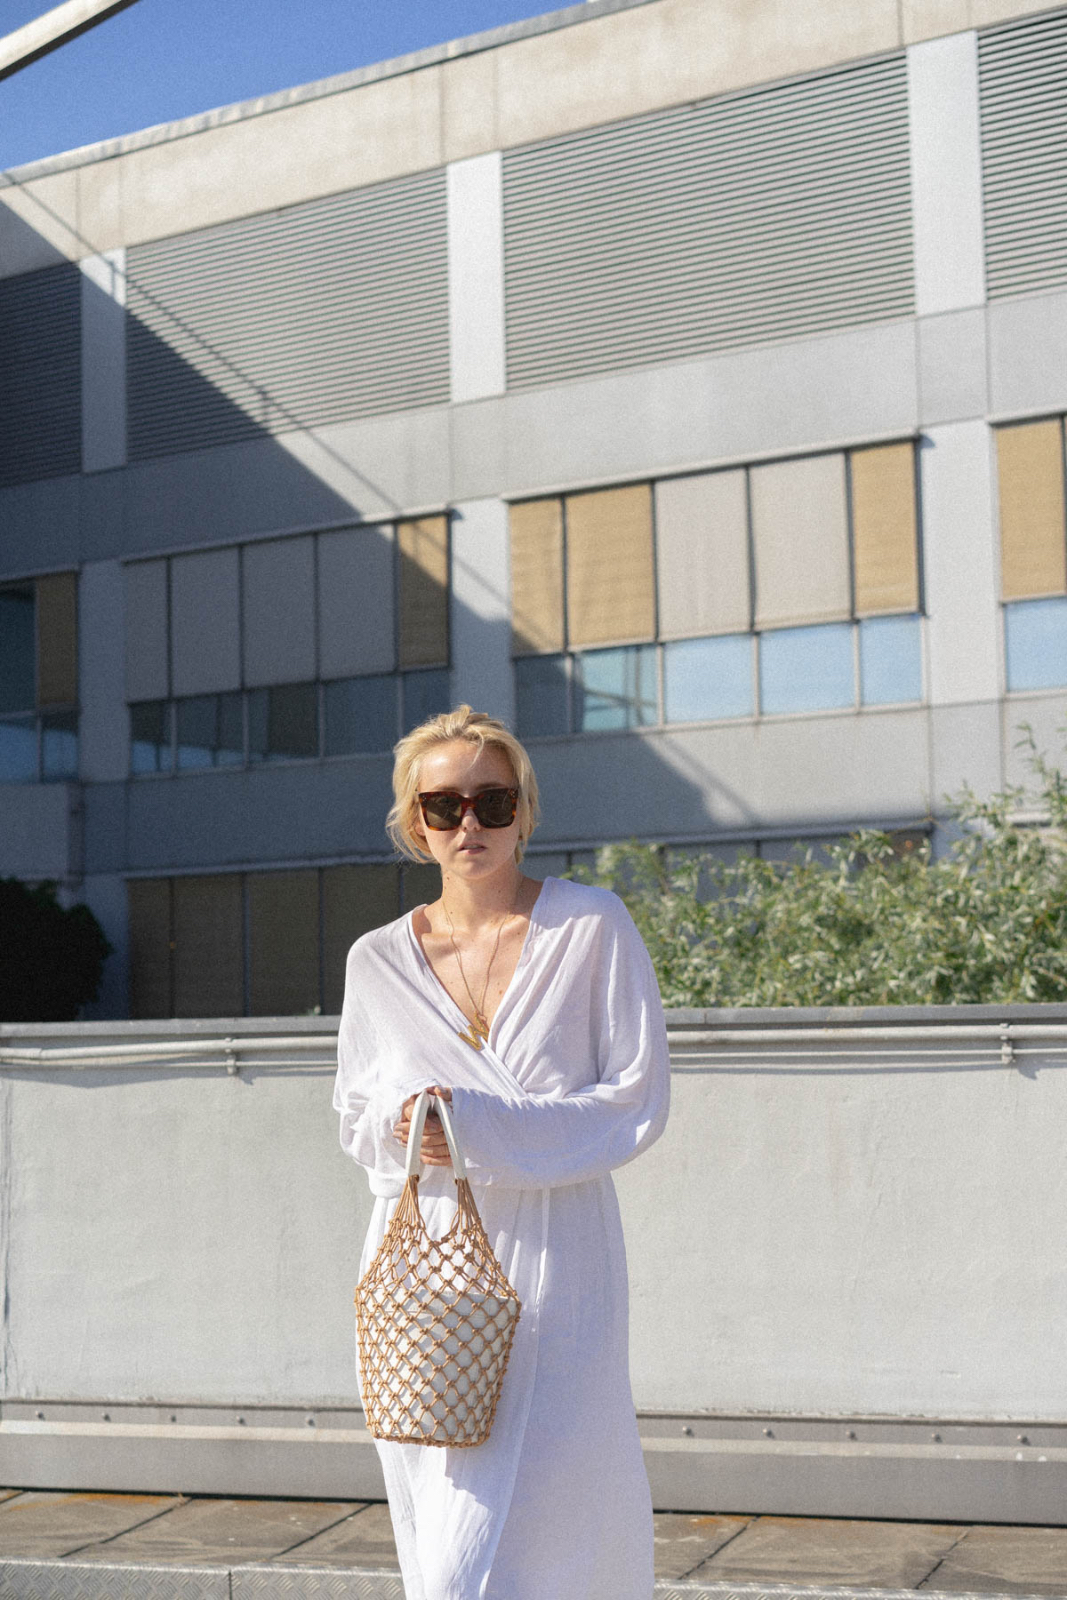 Outfit: The White Robe